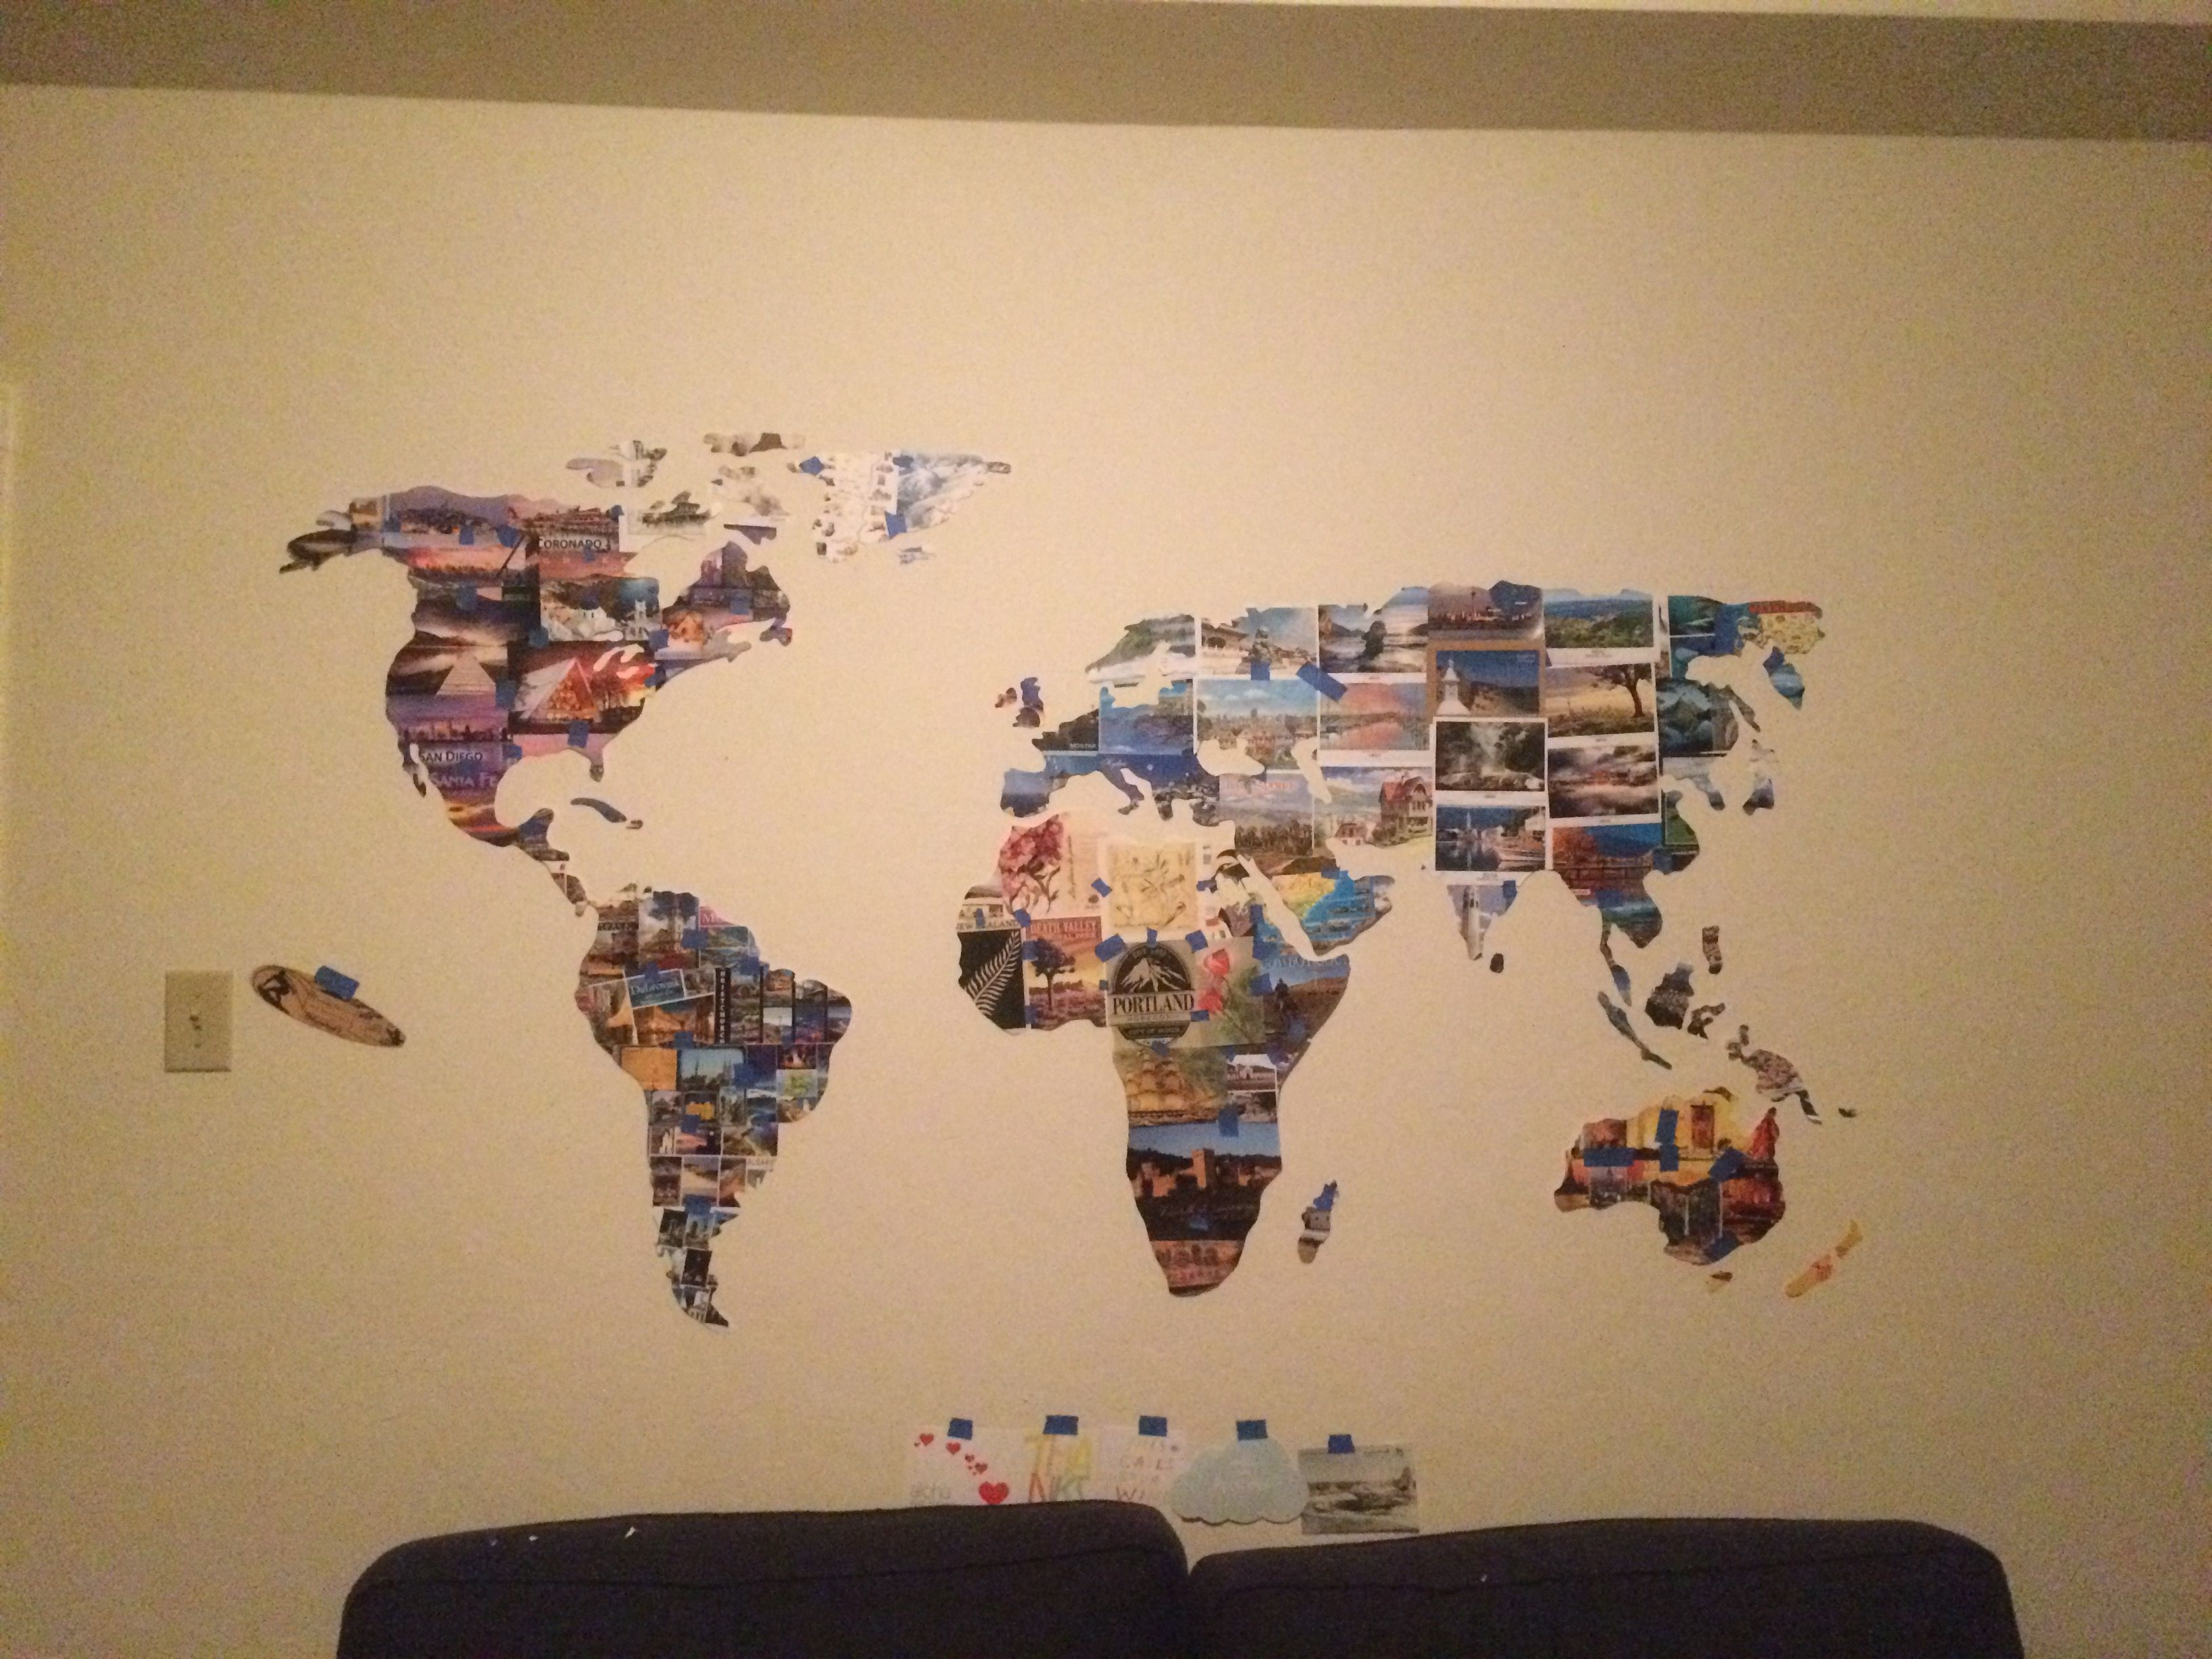 World map made out of postcards from my travels. | Postcard ... on nc travel map, create your own travel map, my trip to greece - part 2, my trips, pa travel map, make a travel map, sd travel map, my trip to greece - part 1, travel map app on facebook, world travel map,